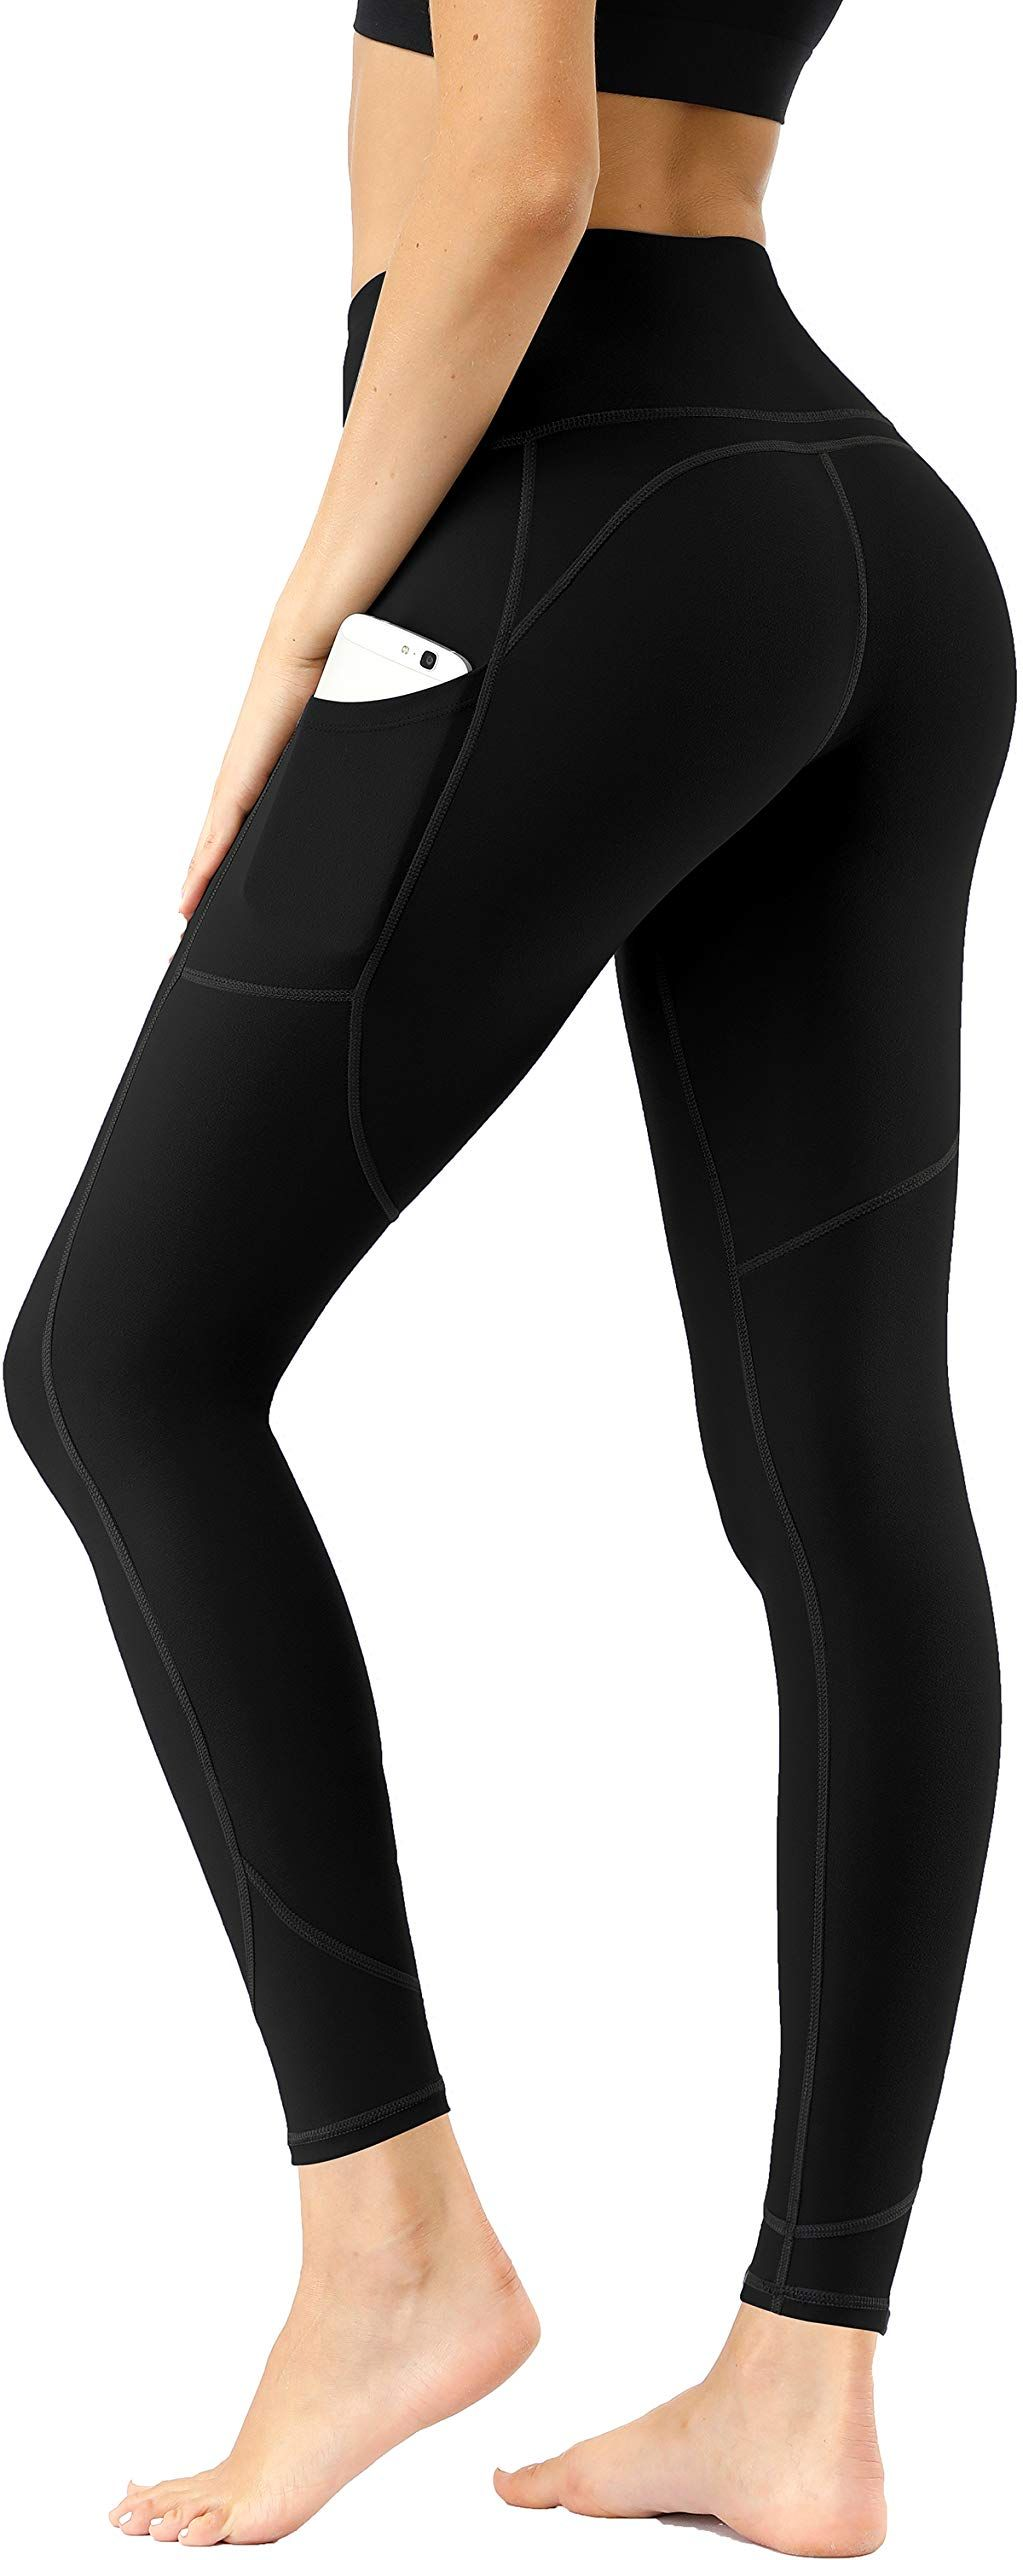 10++ Womens yoga pants with pockets ideas in 2021